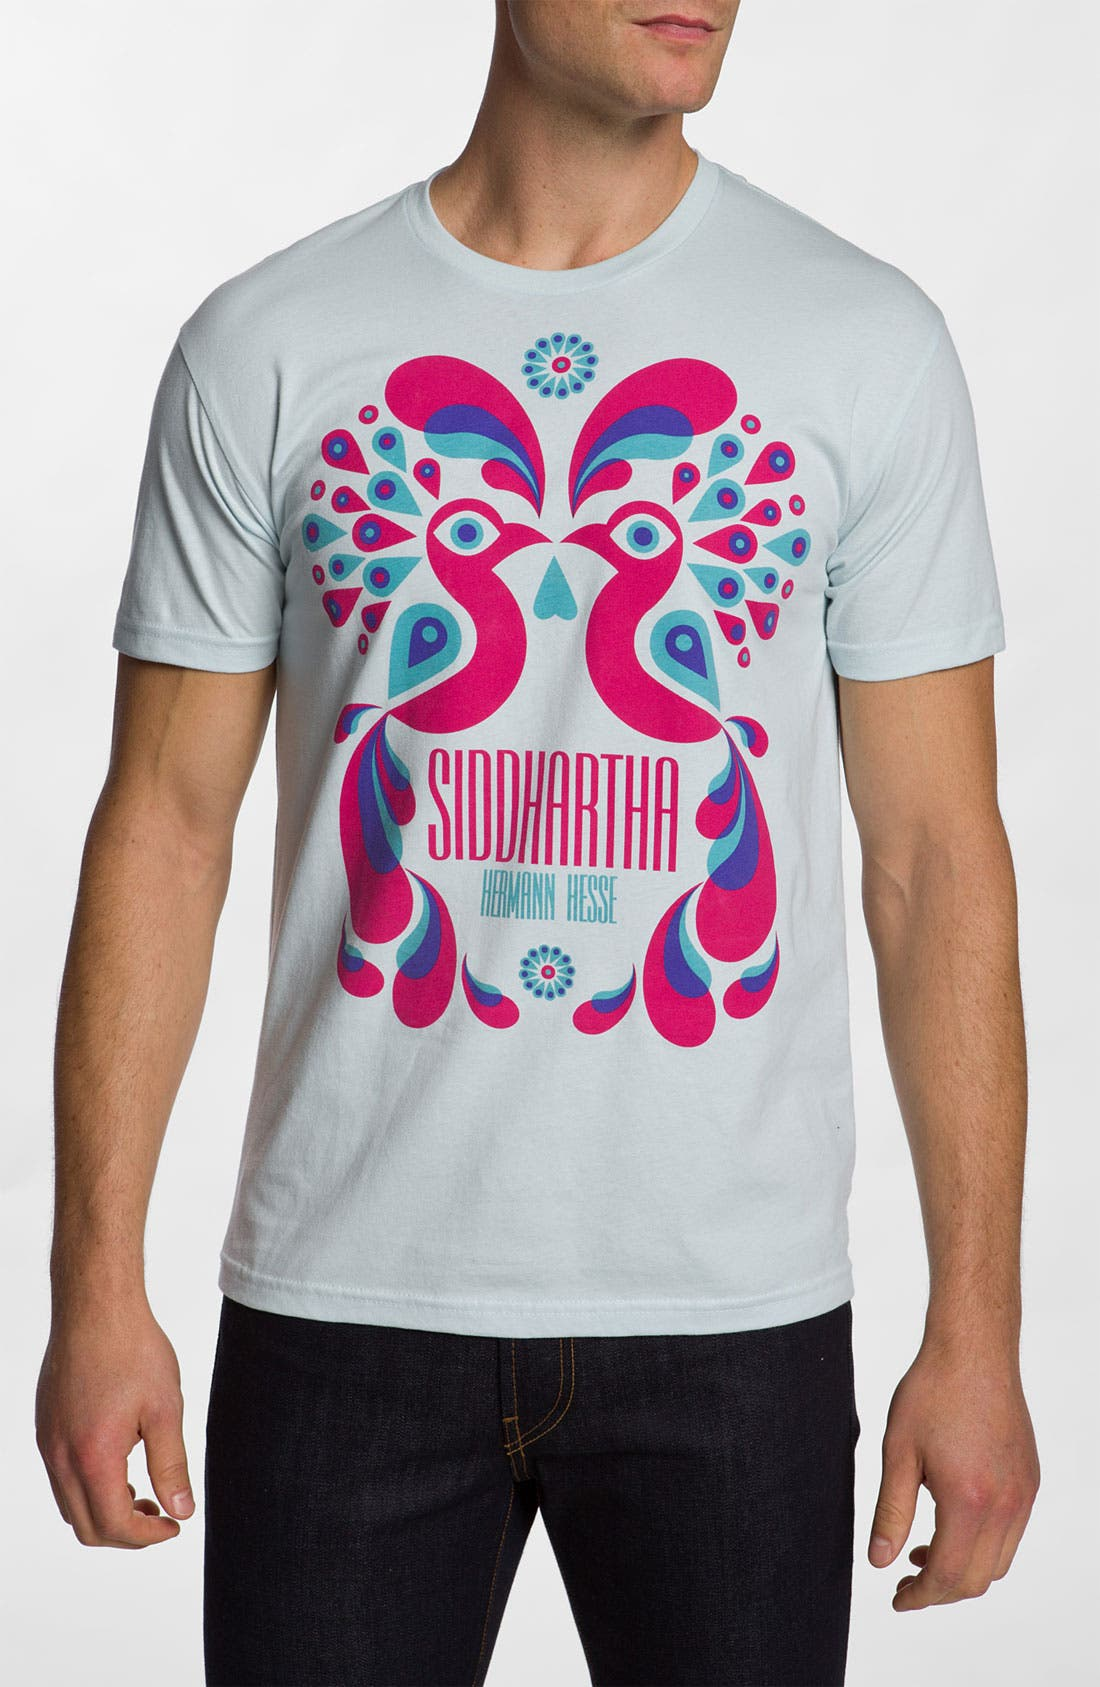 Main Image - Out of Print 'Siddhartha' Graphic T-Shirt